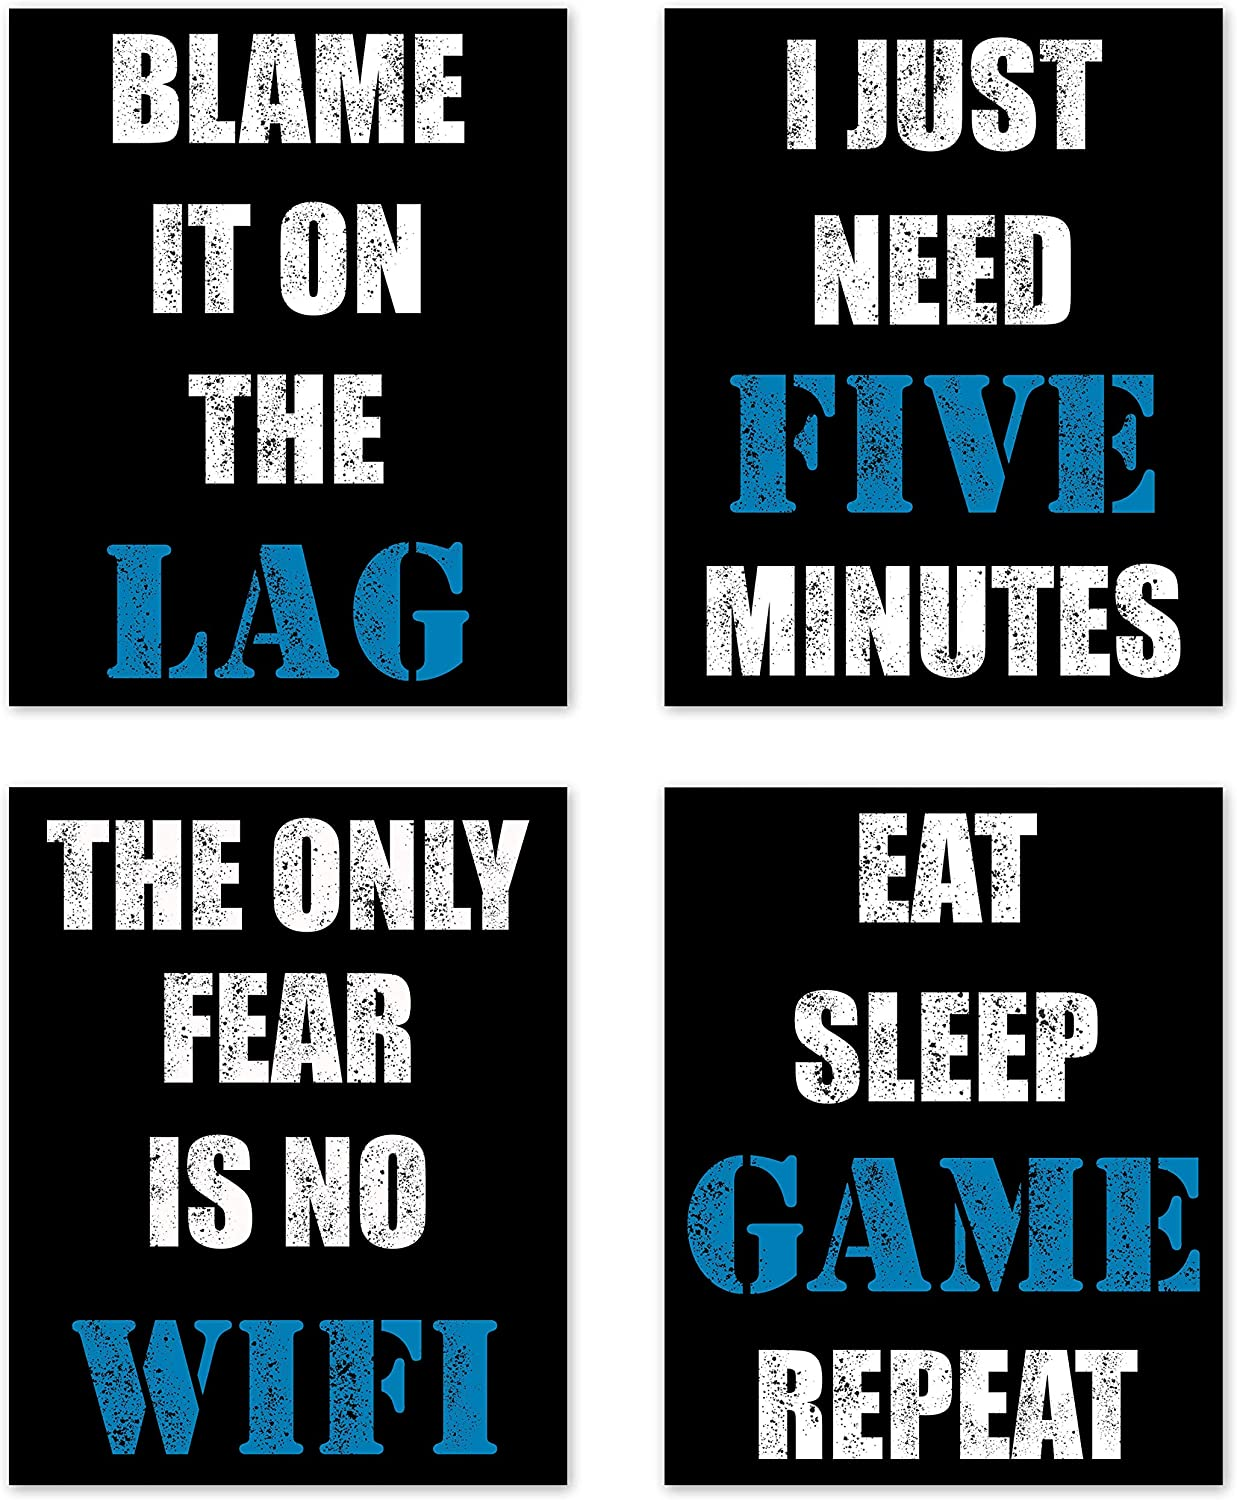 Video Game Themed Gamer Wall Art Posters Home Decor Black, White and Blue Gaming Bedroom Pictures Prints Decorations for Teen Dorm College Playrooom Gameroom Boys Girls Children –Set of 4 8 x 10 in.